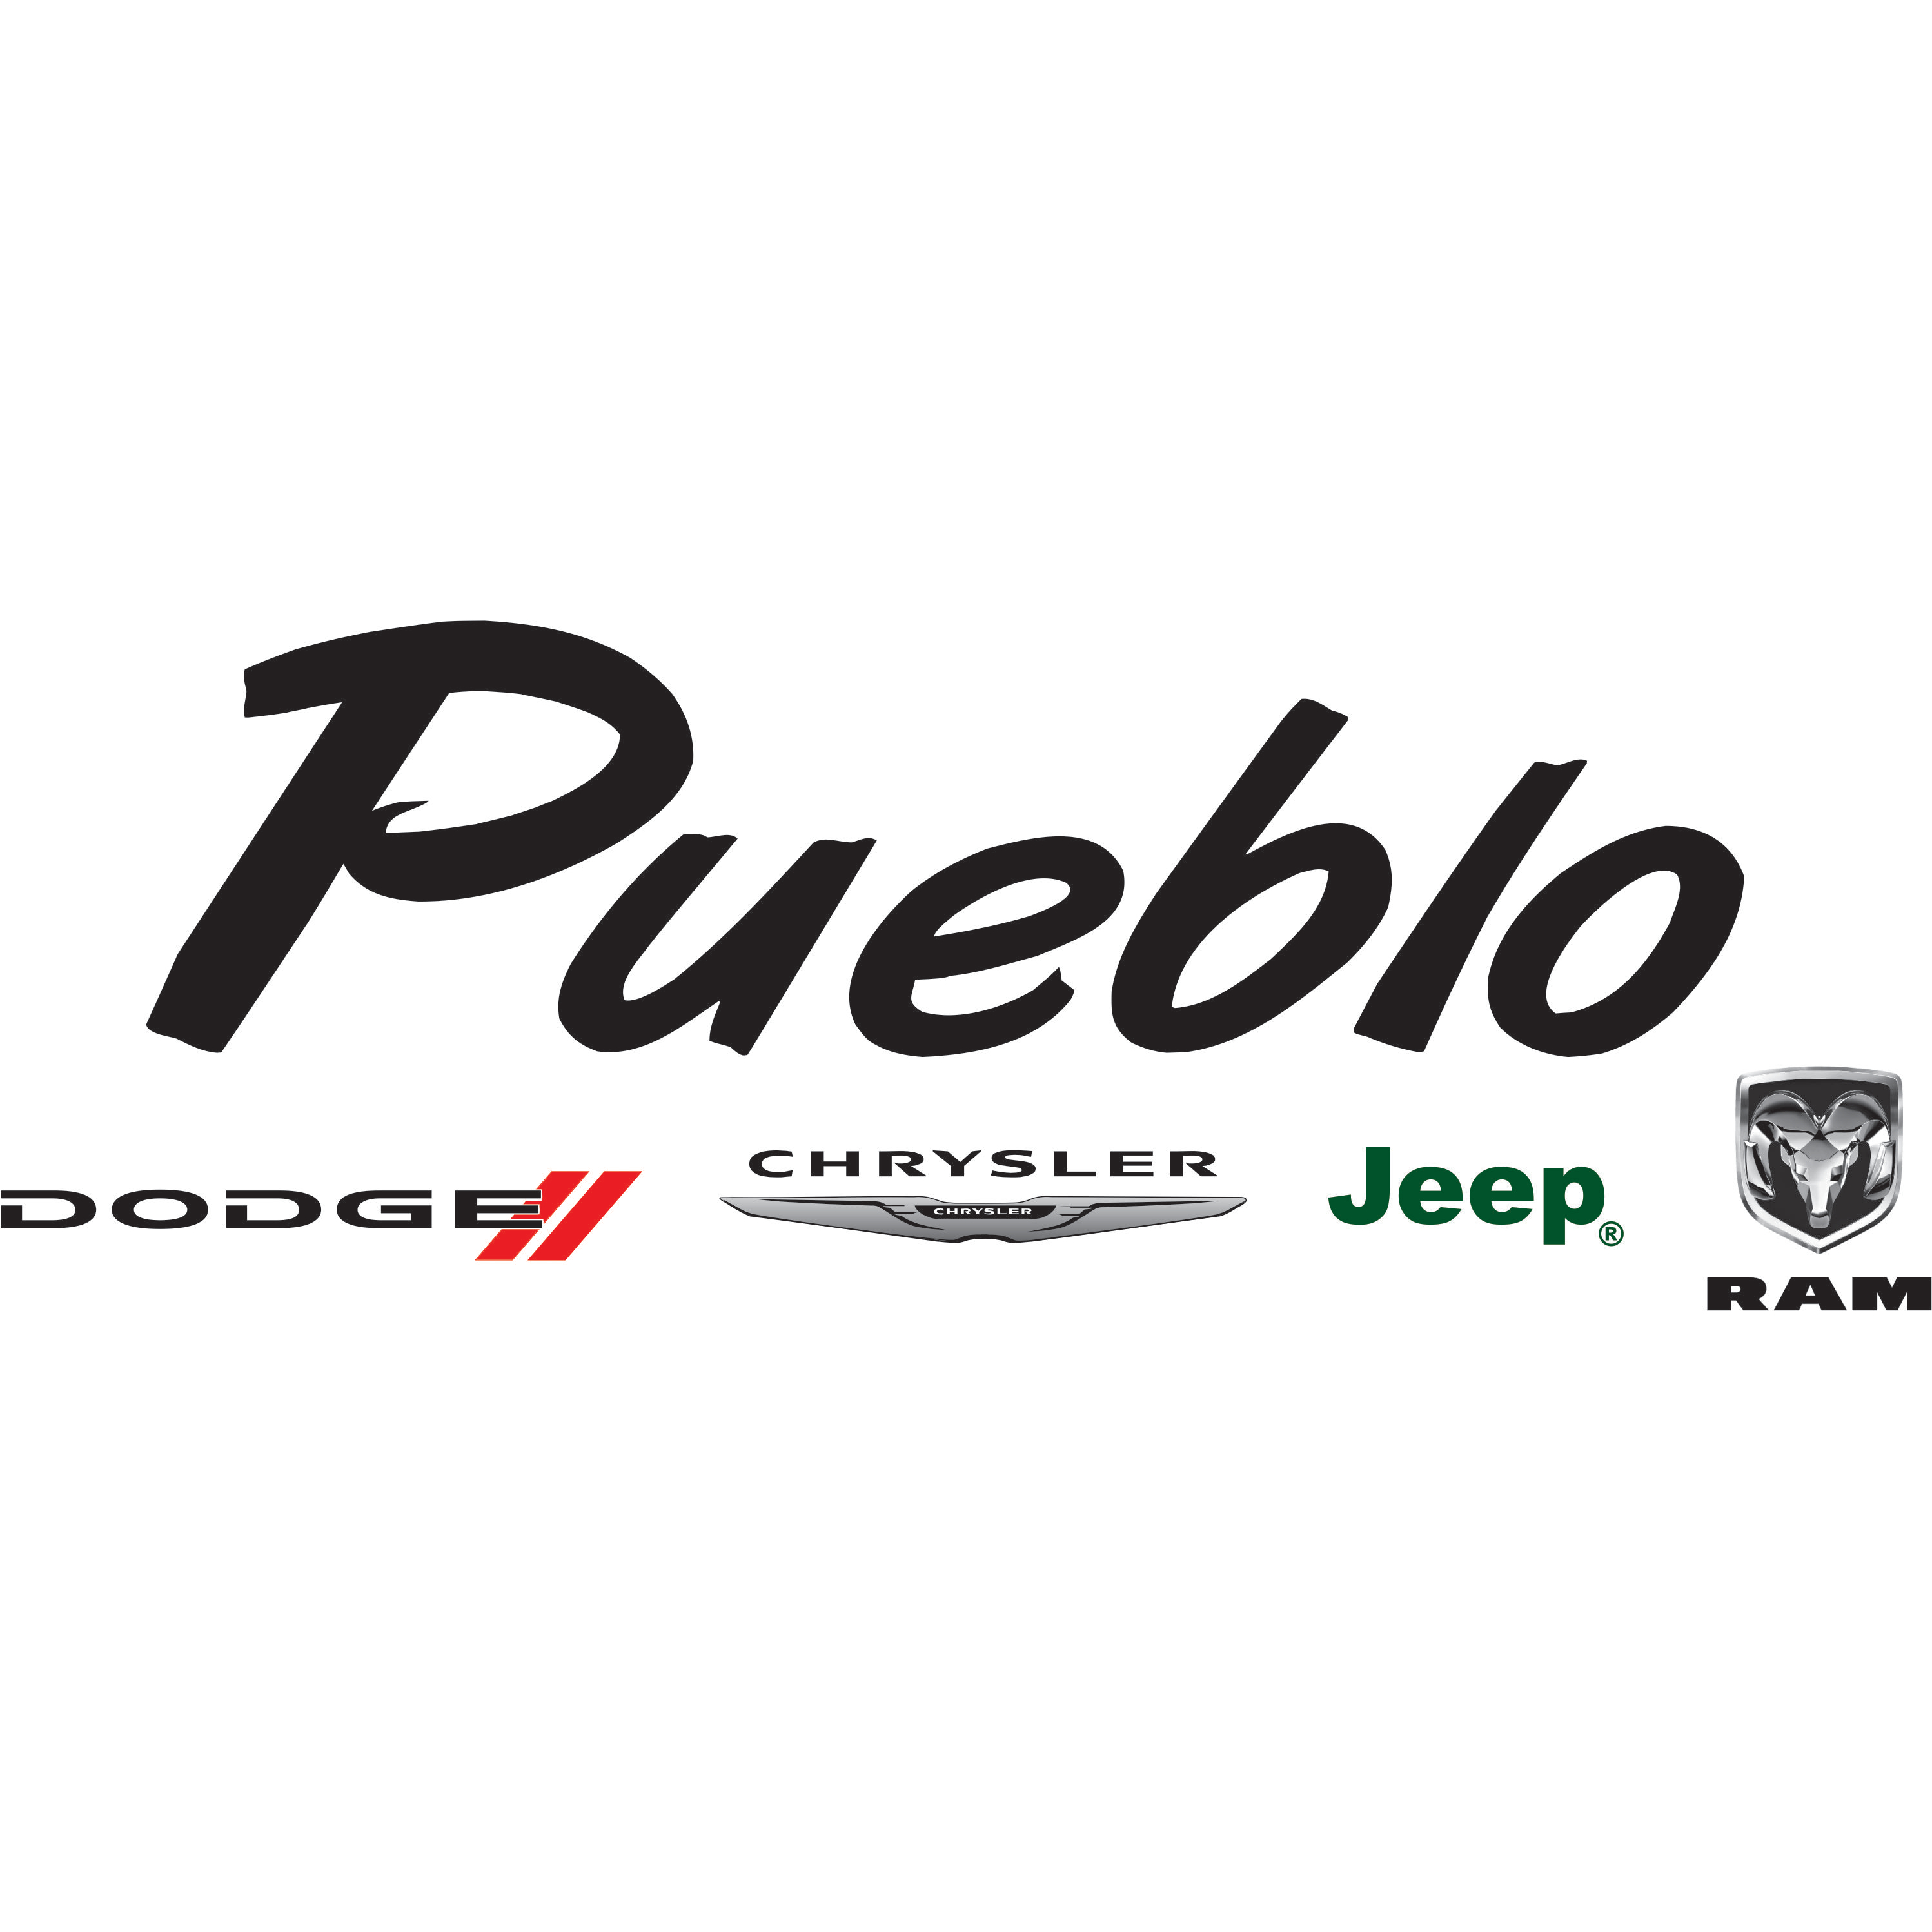 Pueblo Dodge Chrysler Jeep Ram